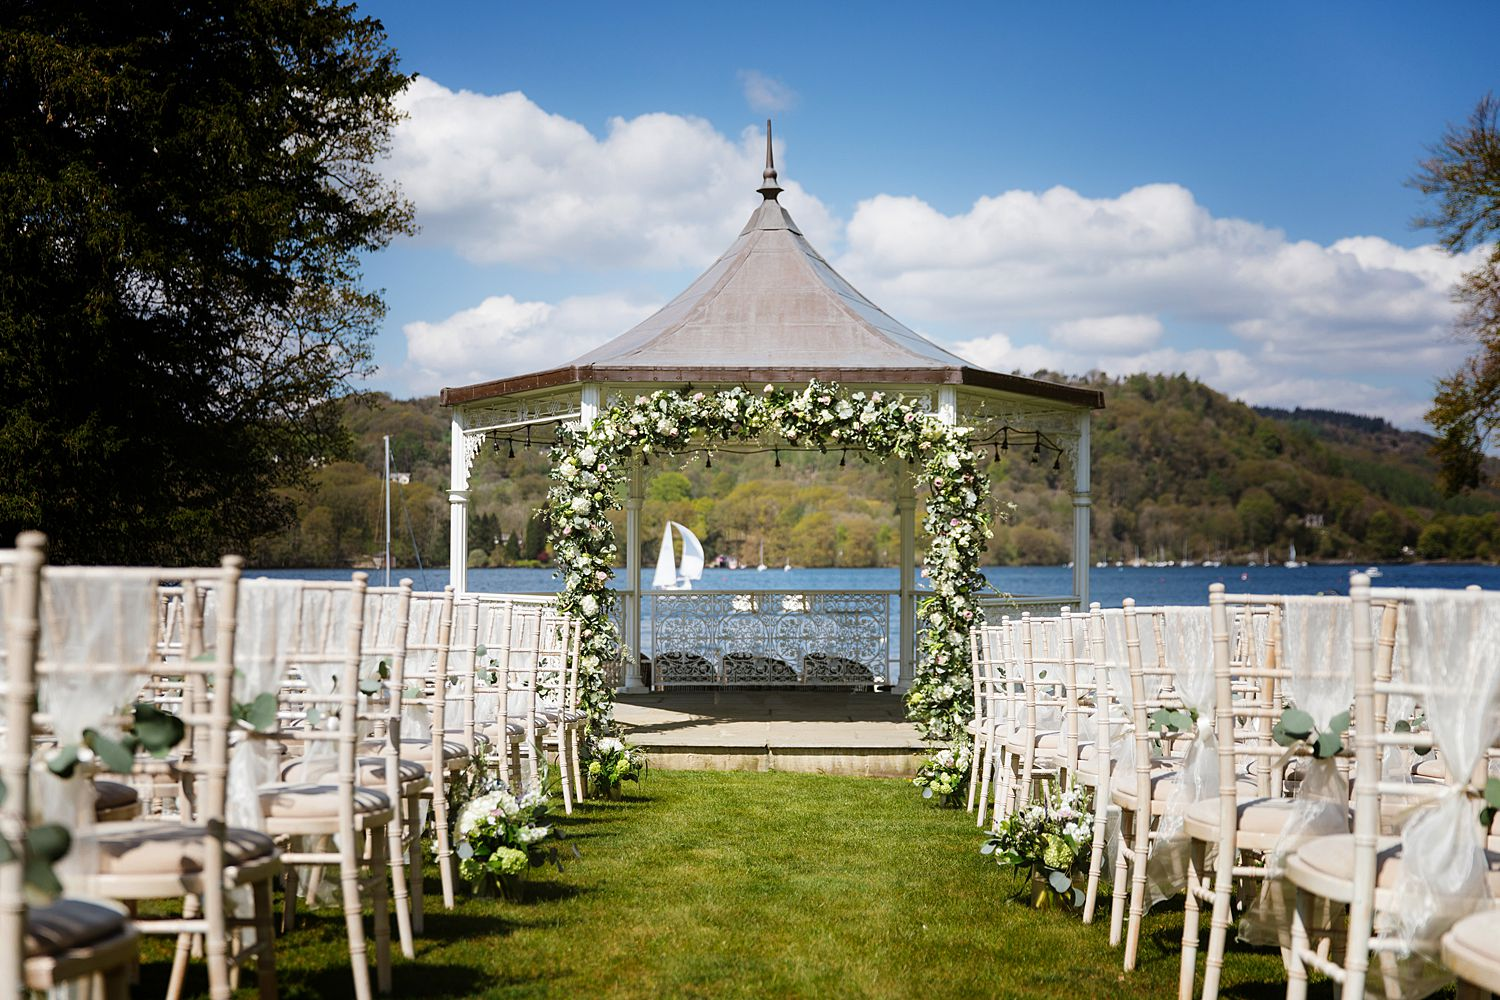 Storrs Hall wedding , Bowness on Windermere with view of the lake